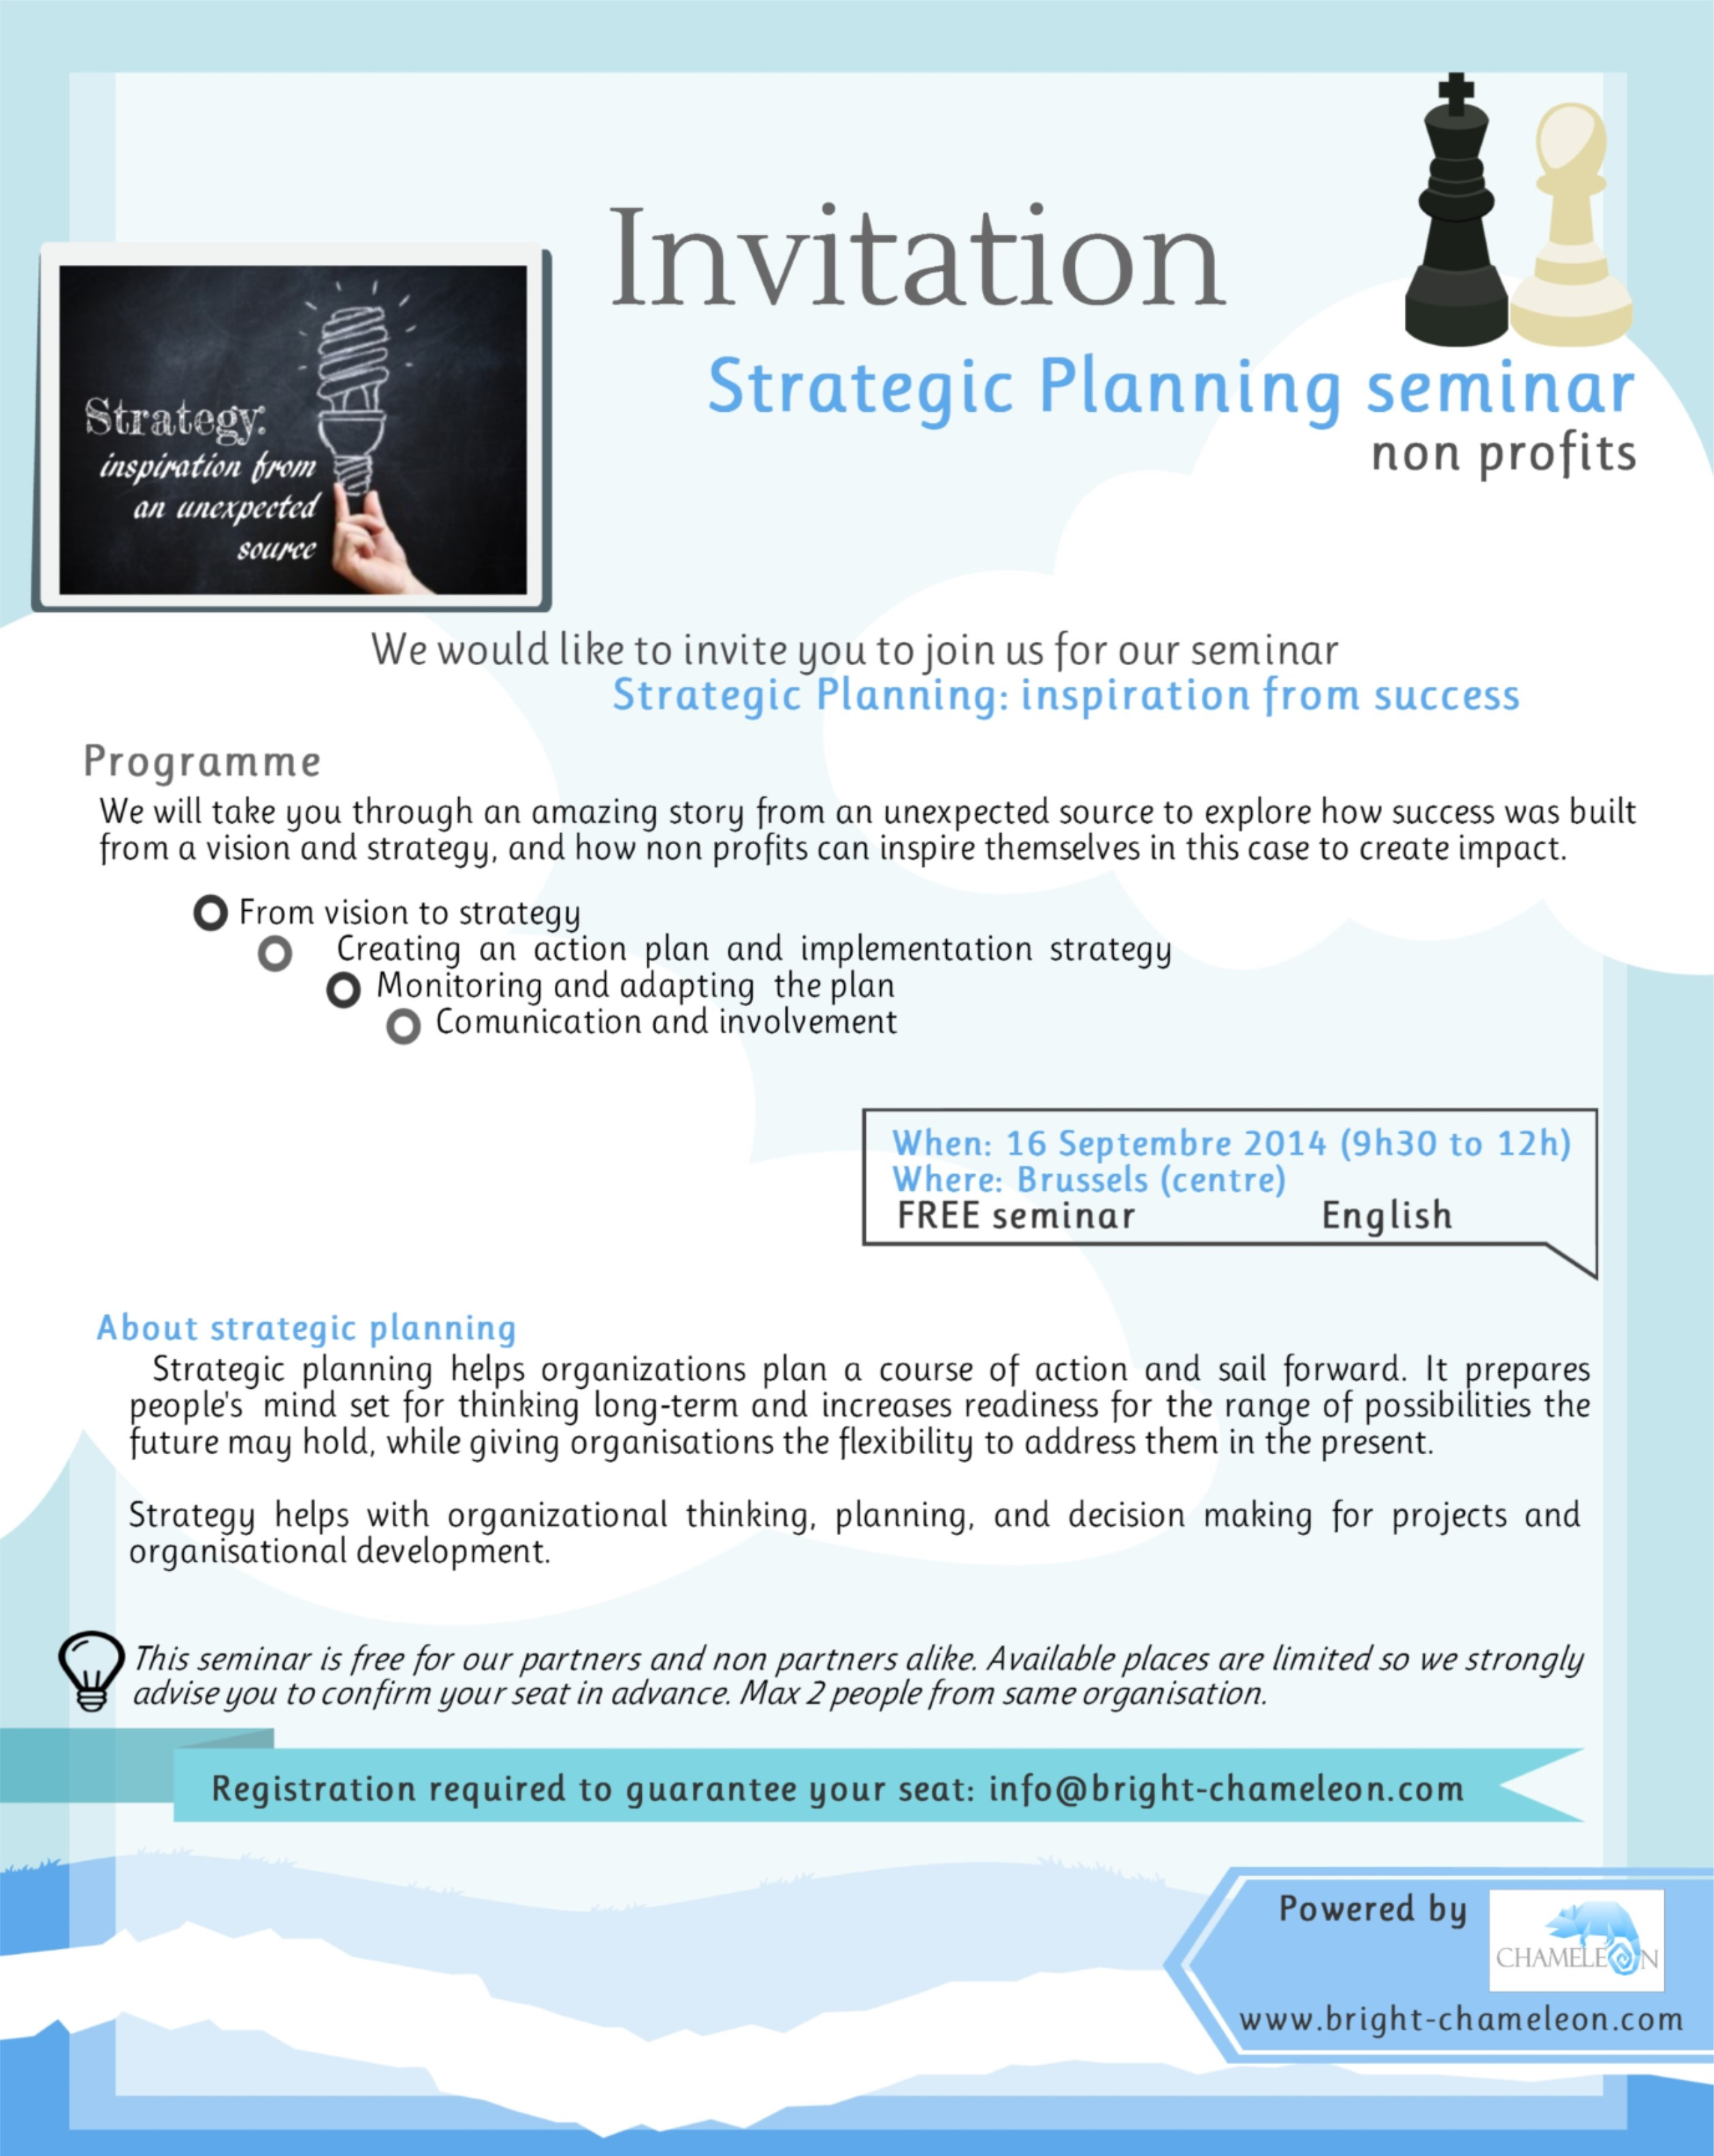 Invitation brochure strategic planning for nonprofits seminar view original photo stopboris Images